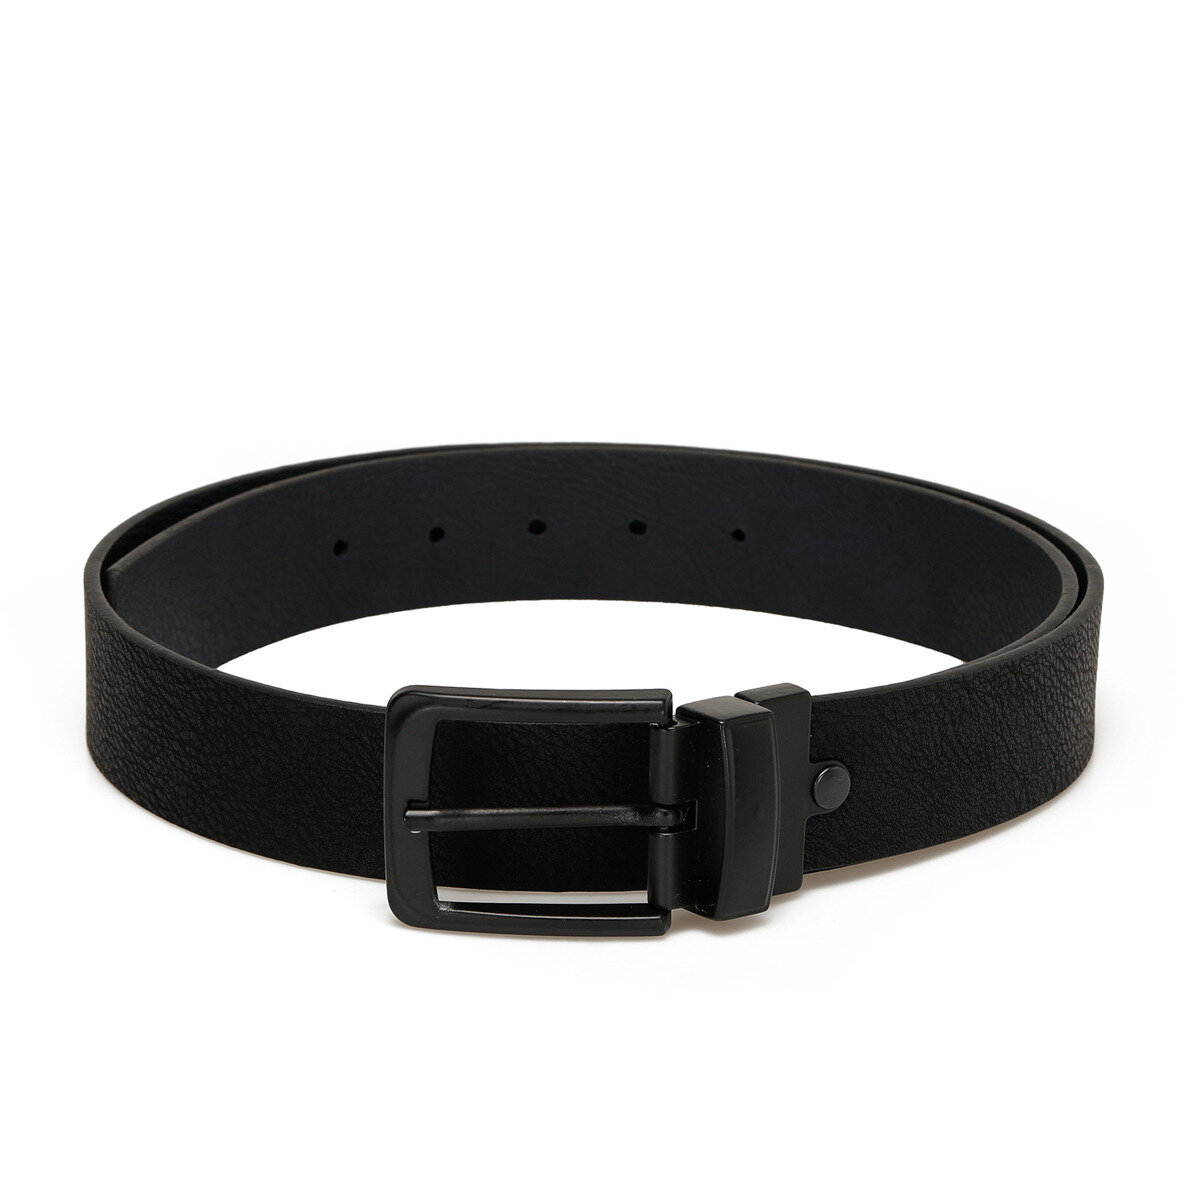 FLO 20M RS CFT Navy Blue Male Belt Oxide